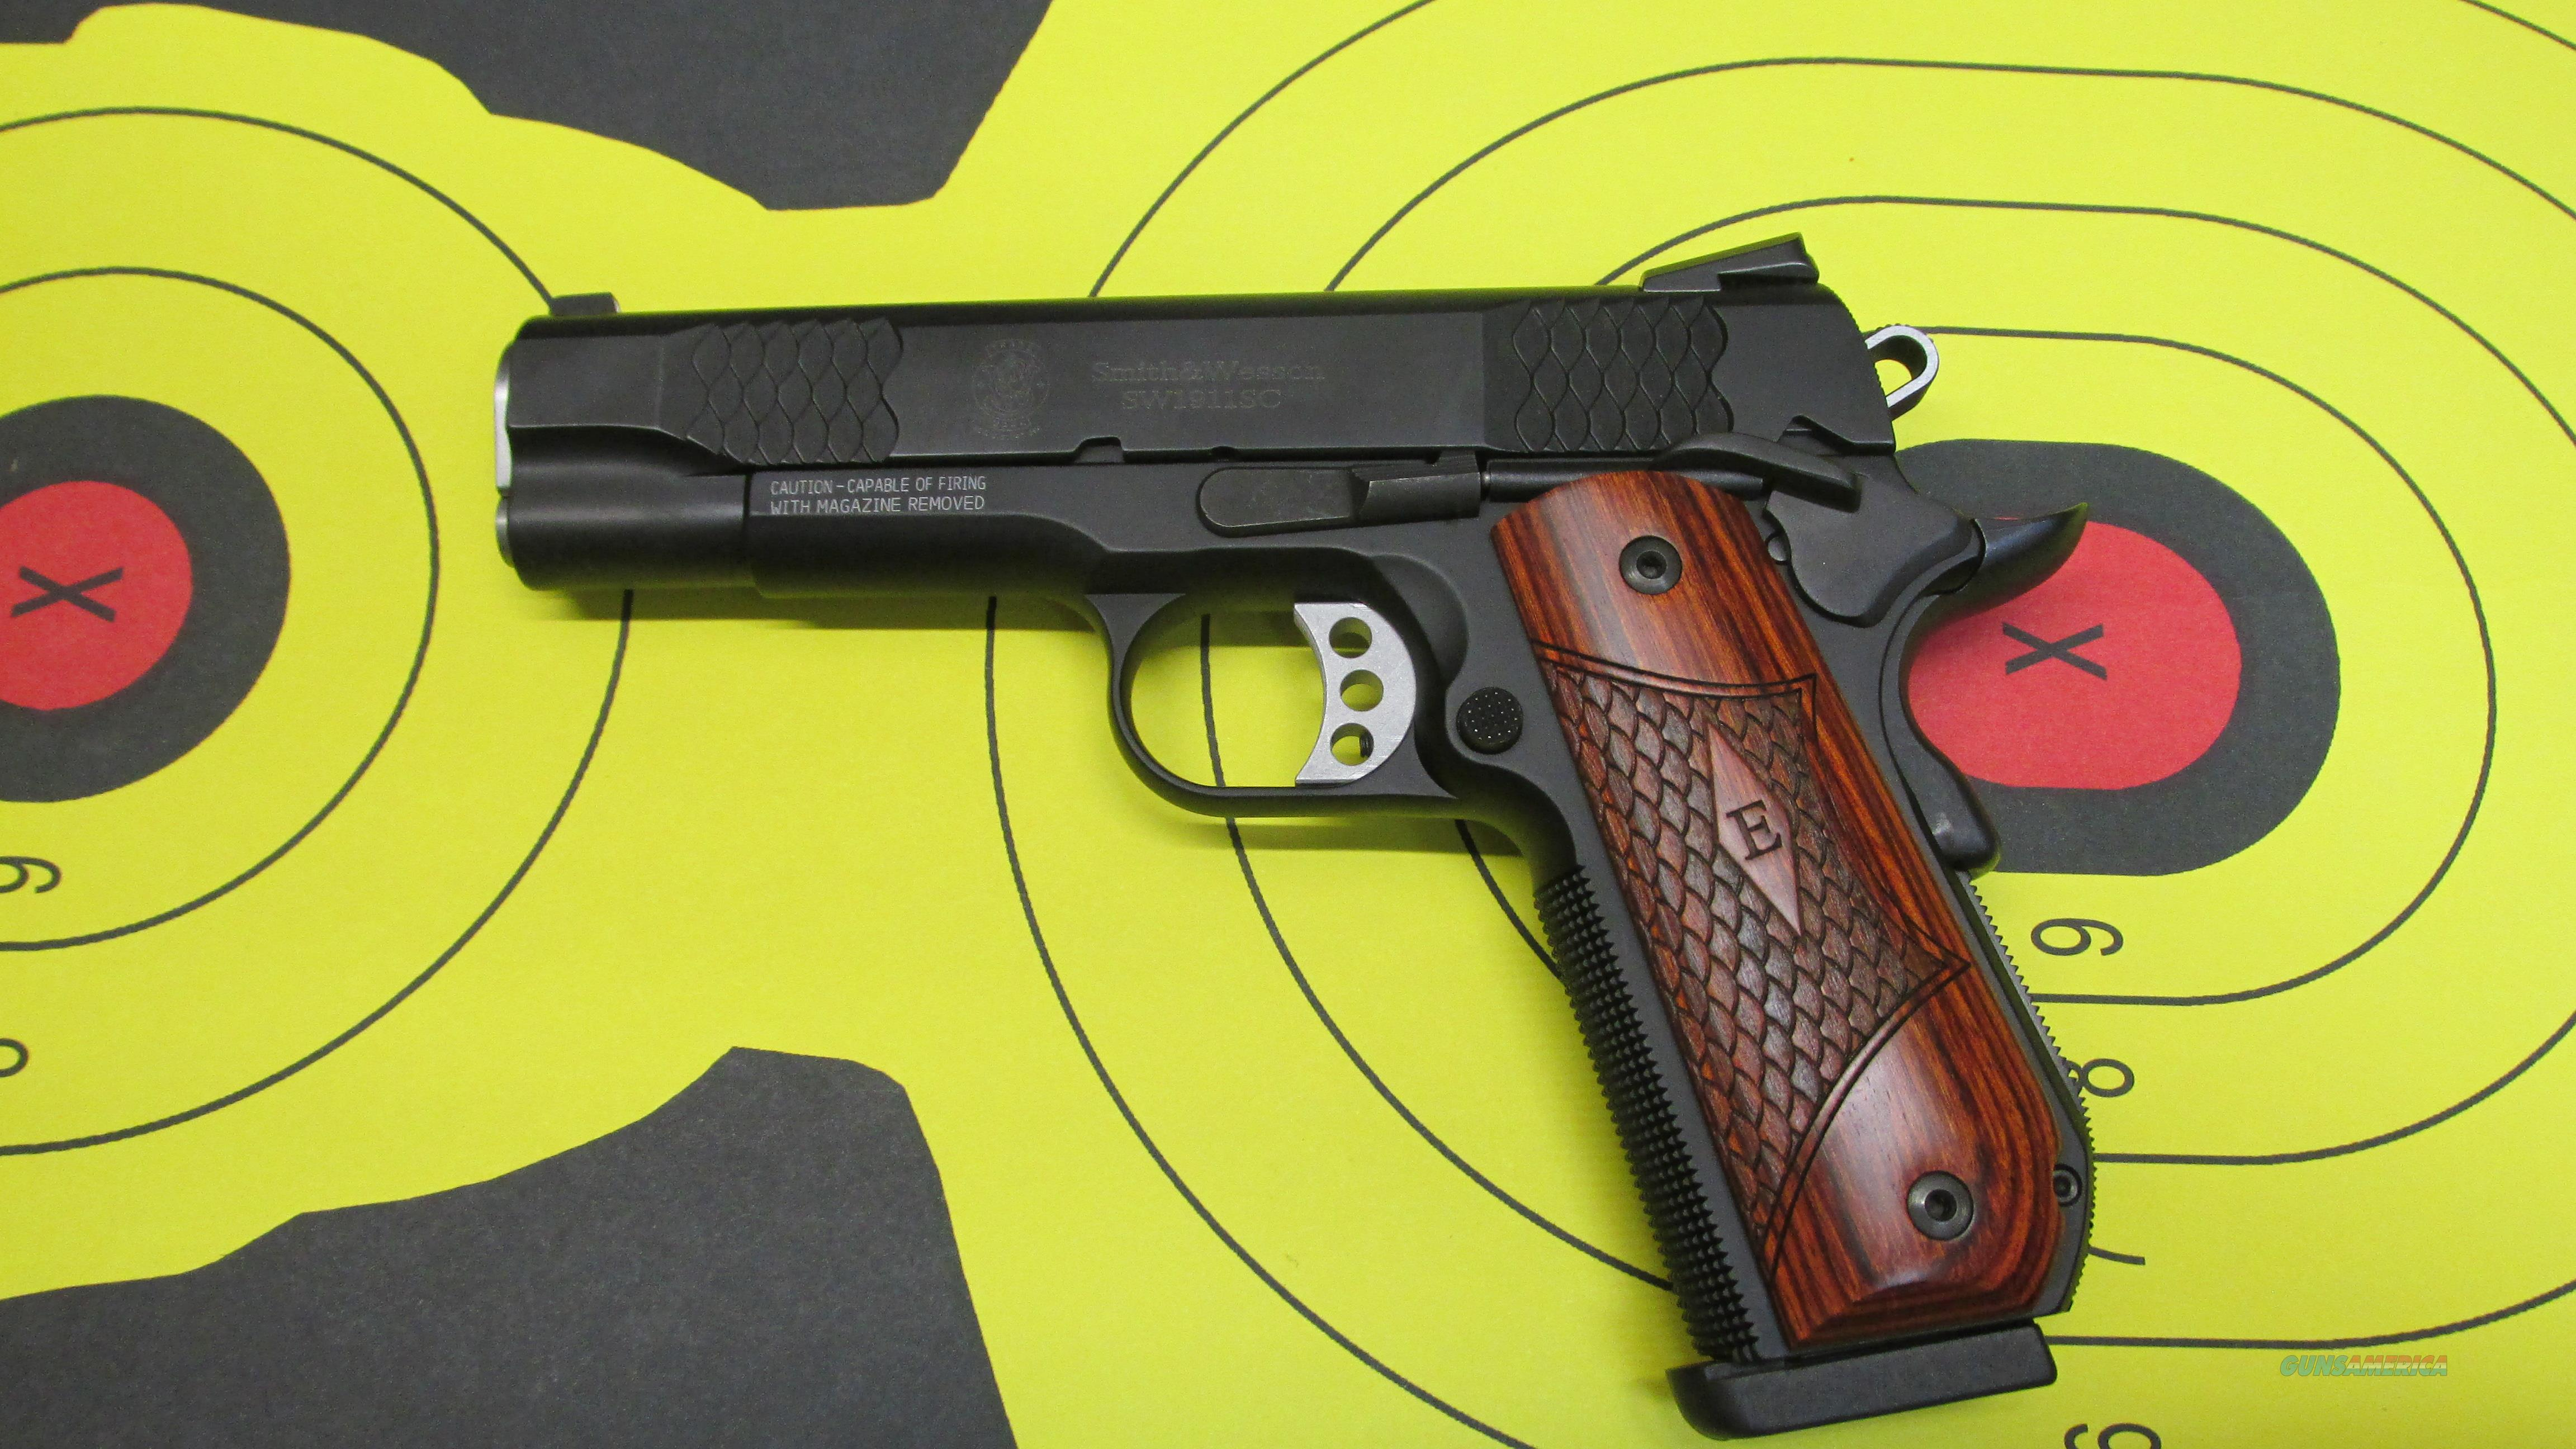 "SMITH & WESSON SW1911SC .45 ACP PISTOL E-SERIES BLUED, 4.25"" Barrel, (1) 8 ROUND MAGAZINE  Guns > Pistols > Smith & Wesson Pistols - Autos > Steel Frame"